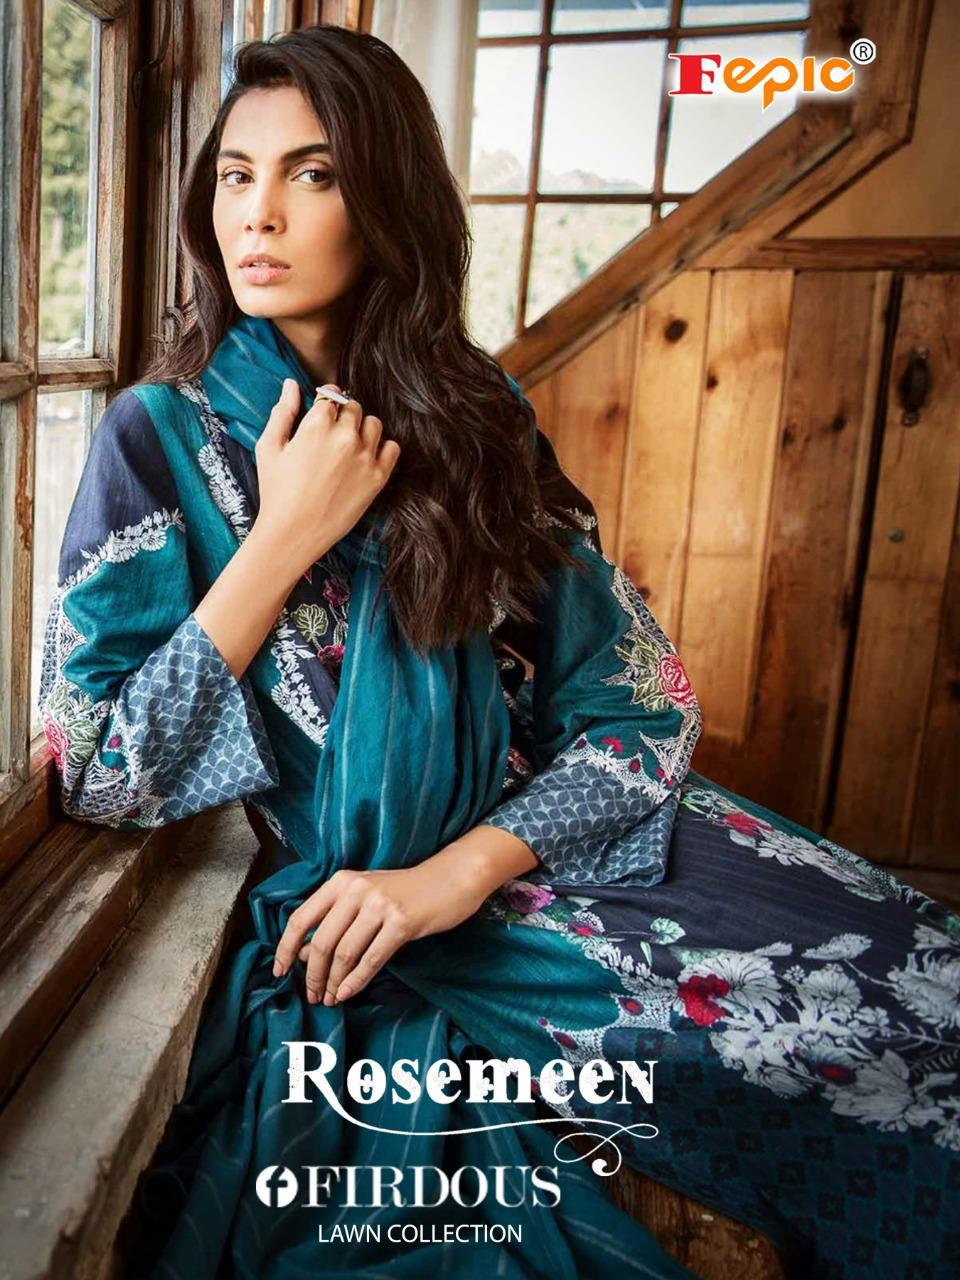 Fepic Rosemeen Firdous Lawn Collection Pure Cambric Cotton Printed With Embroidery Work Patch Work Pakistani Collection At Wholesale Rate